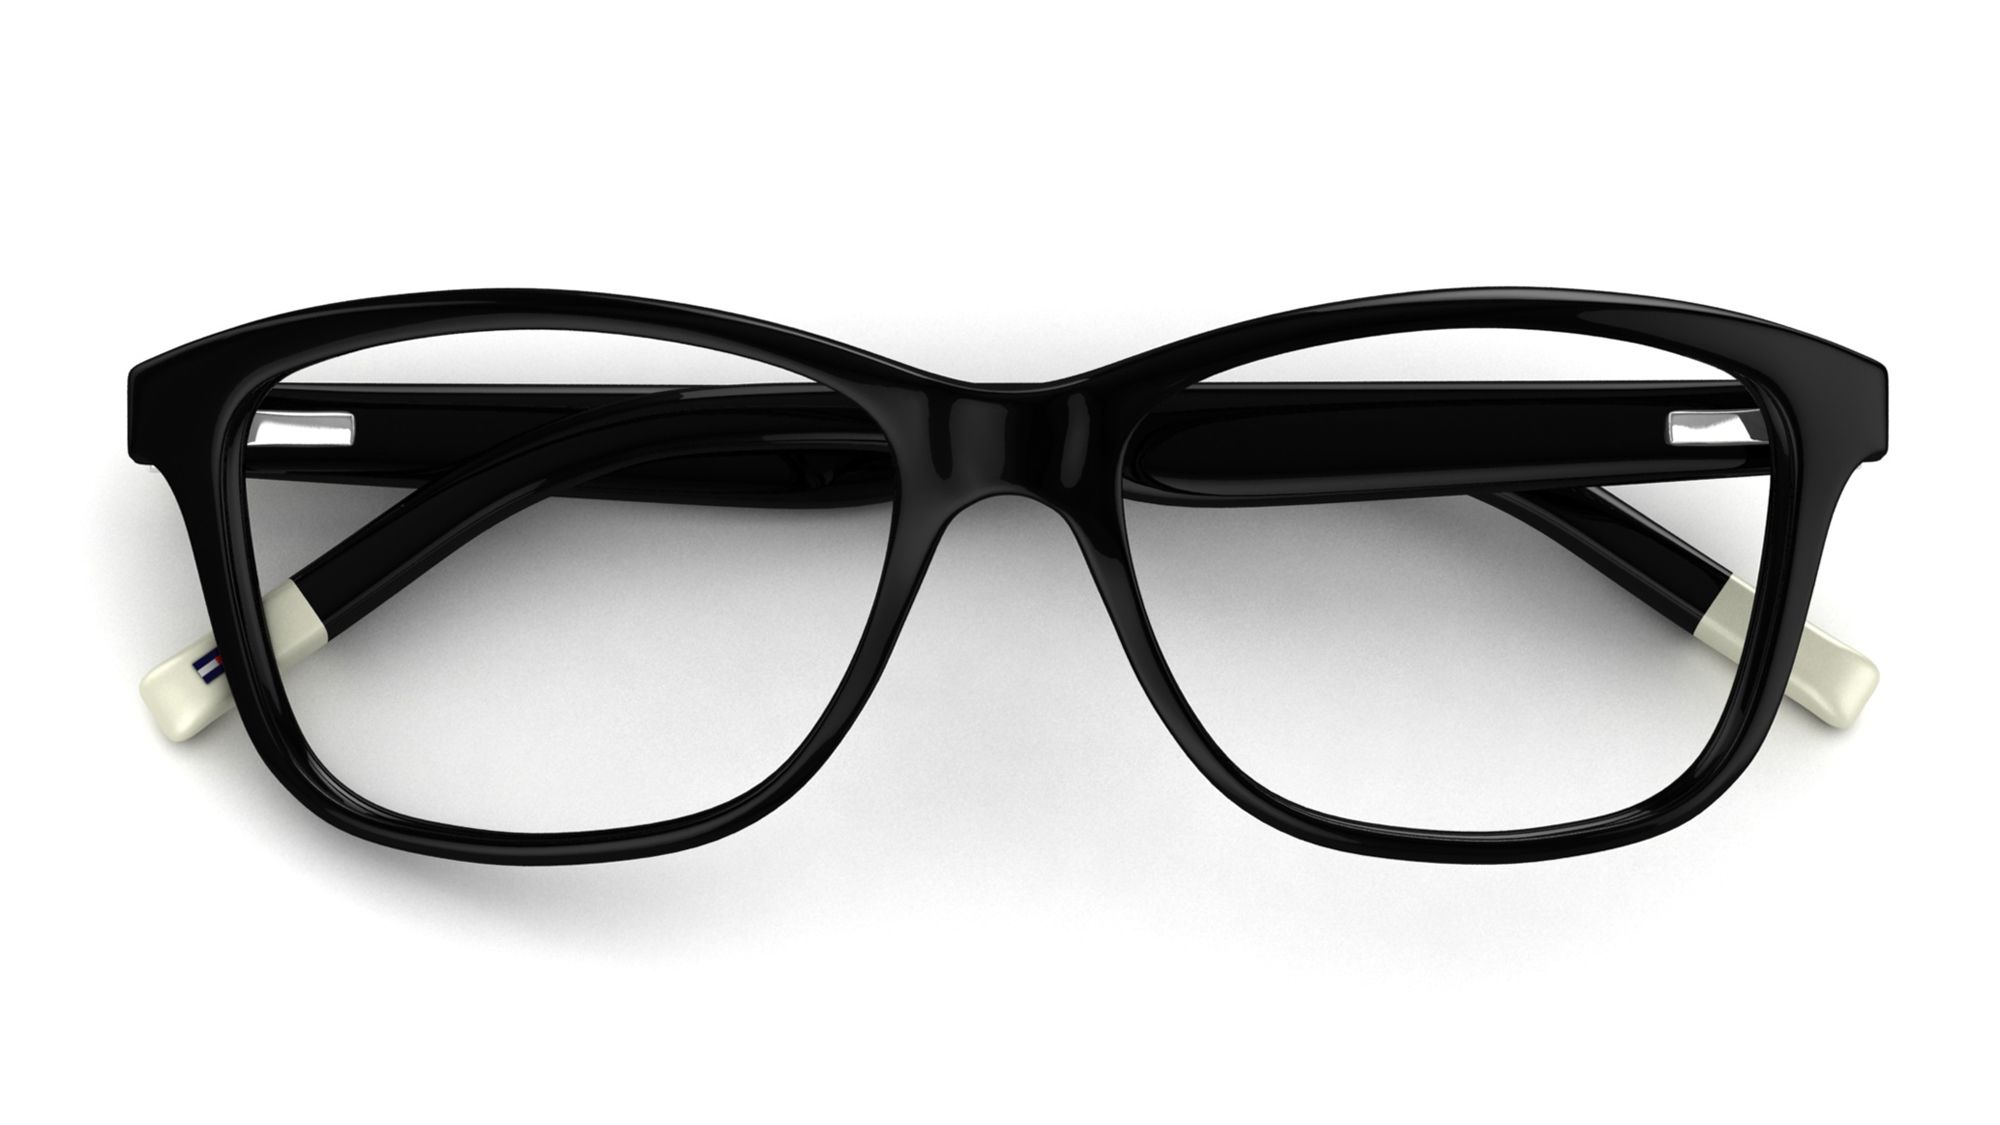 29712520f Tommy Hilfiger glasses - TH 66 | Clothes in 2019 | Tommy hilfiger ...